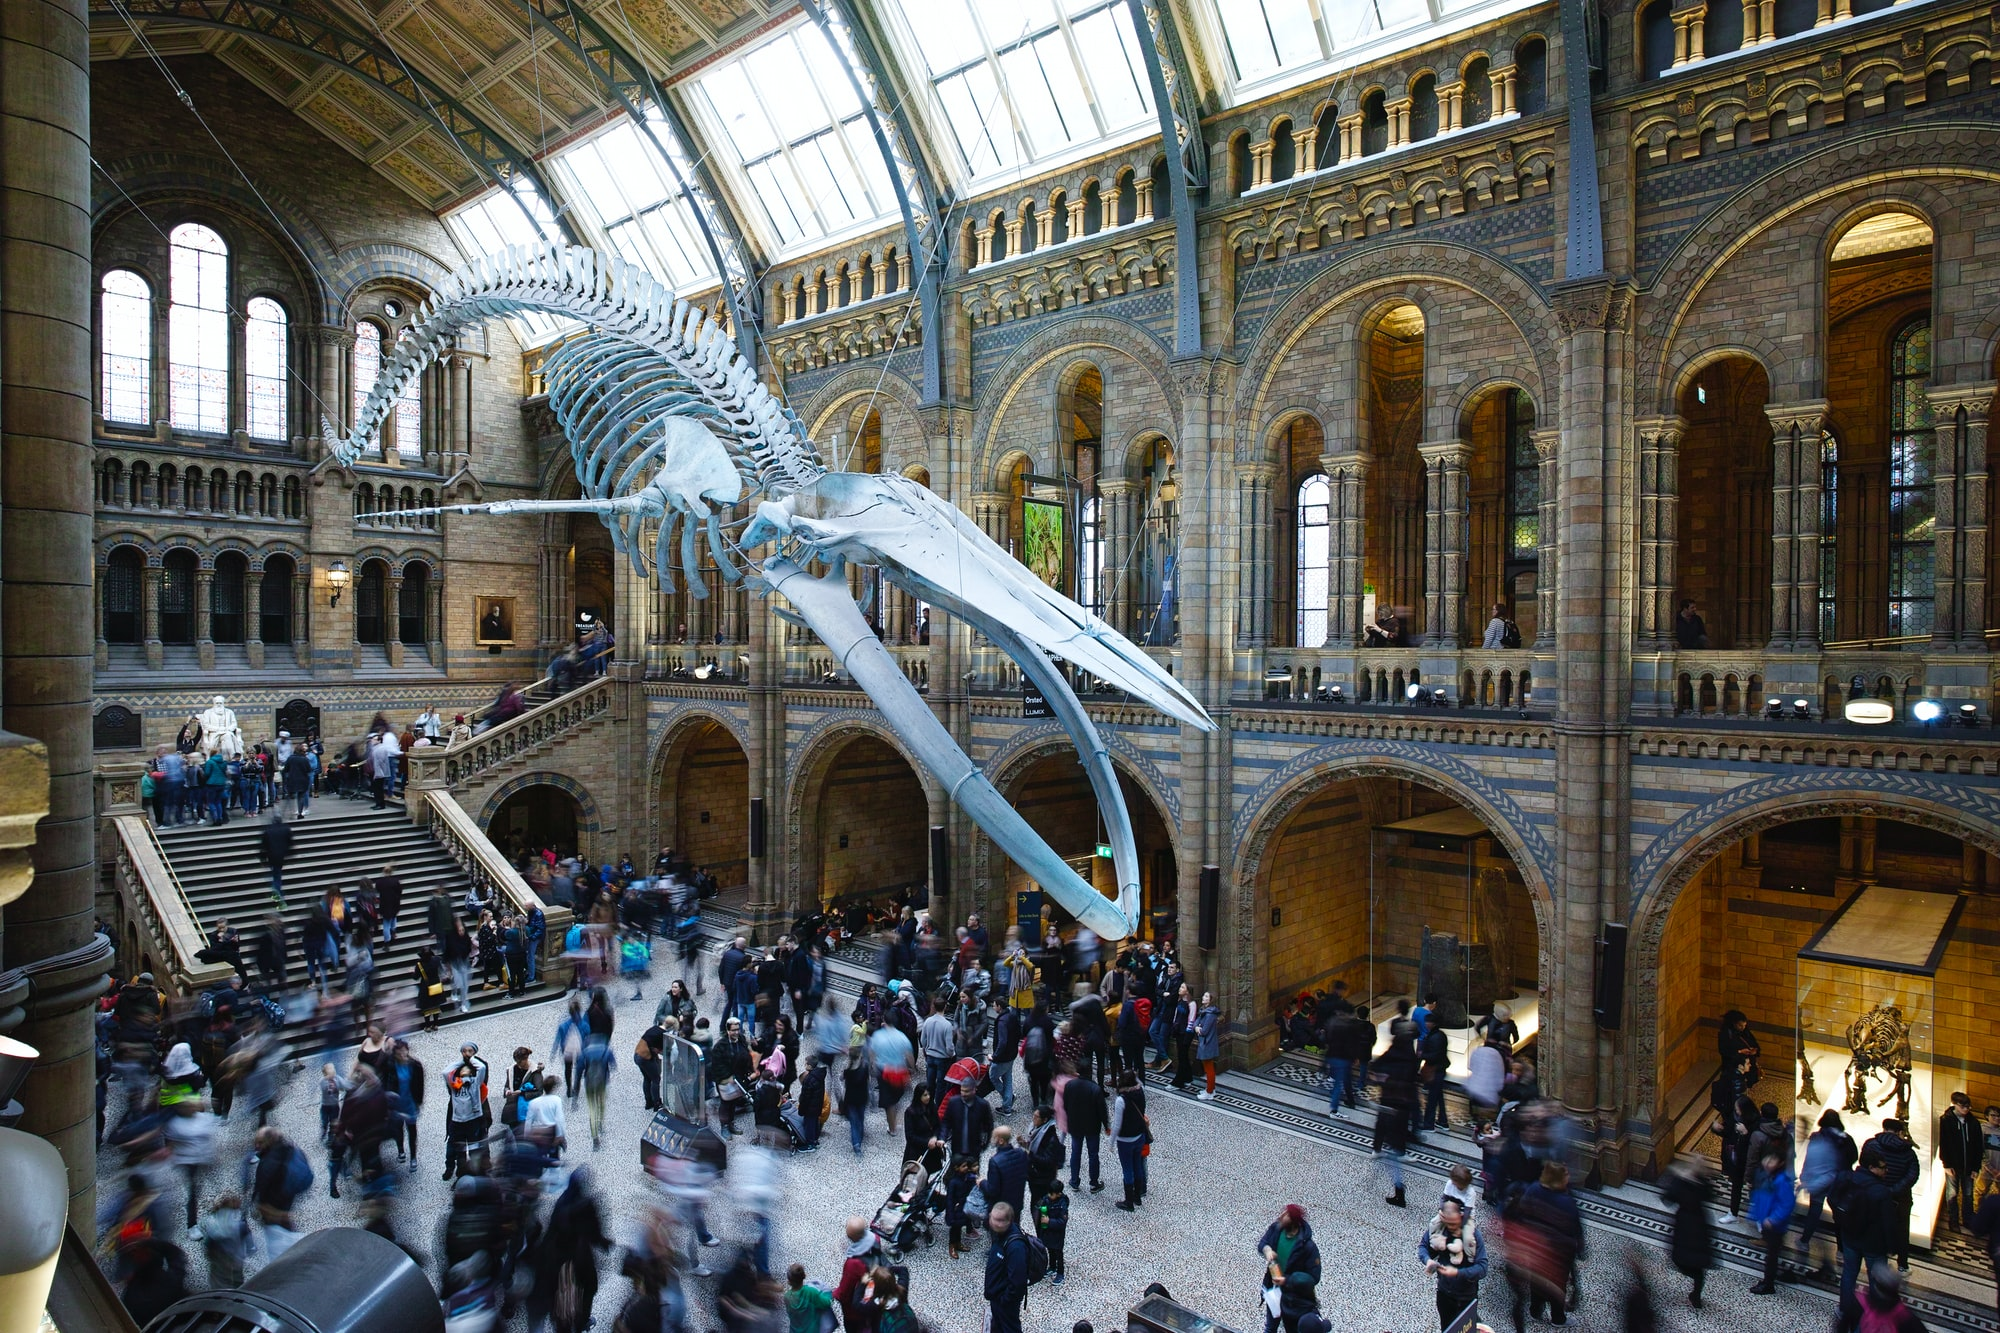 The Blue Whale Skeleton towering over the crowd at the Natural History Museum in London